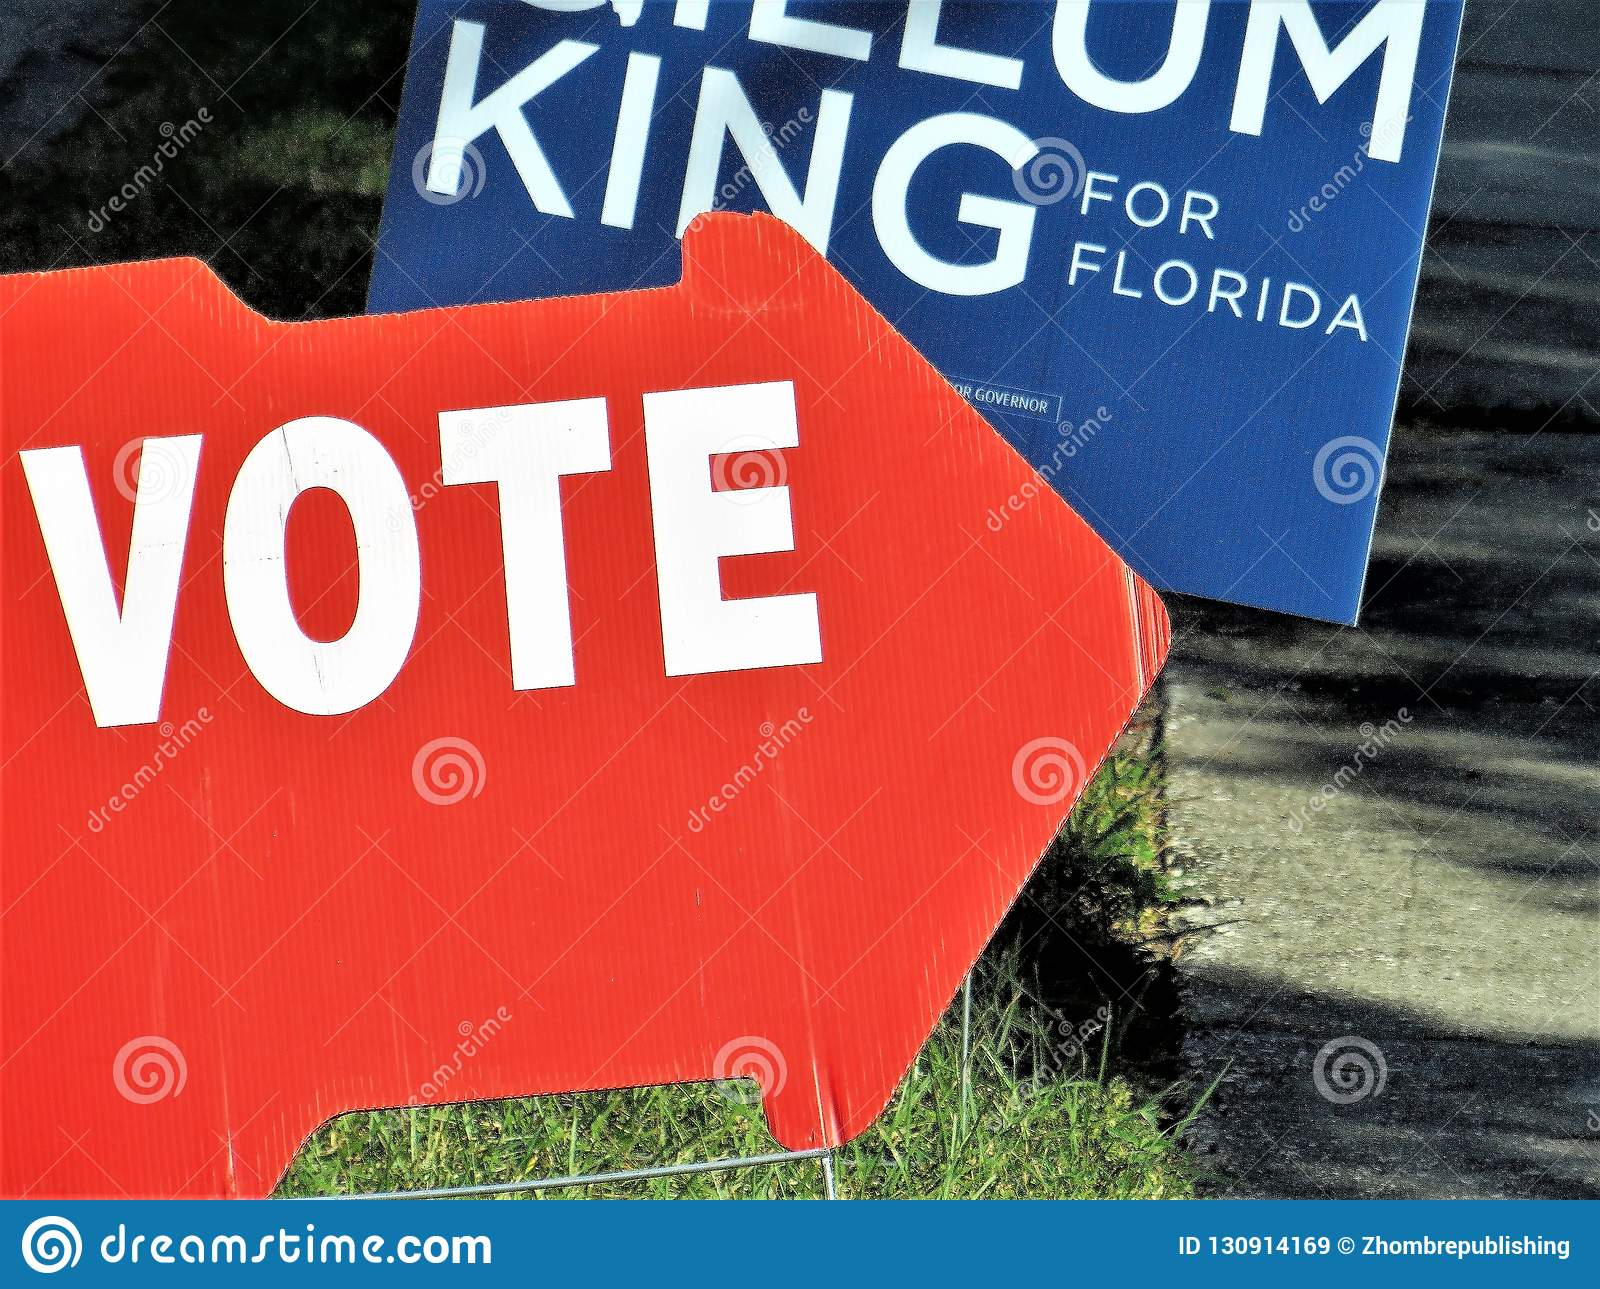 Vote sign, Florida